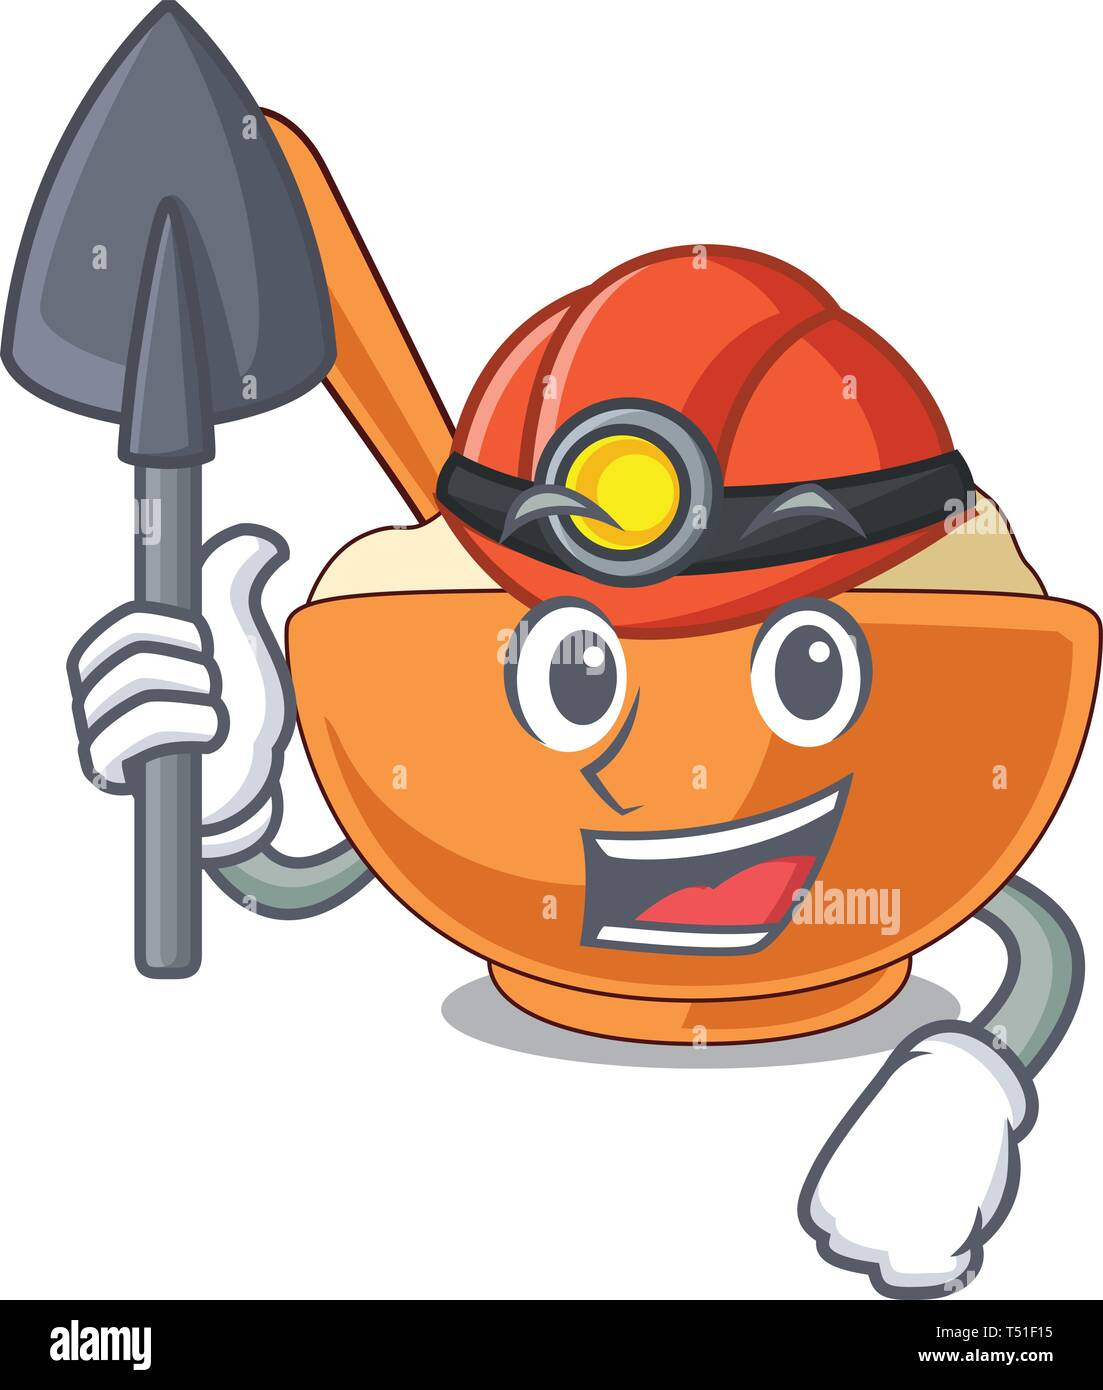 Miner mashed potato in the shape mascot - Stock Image